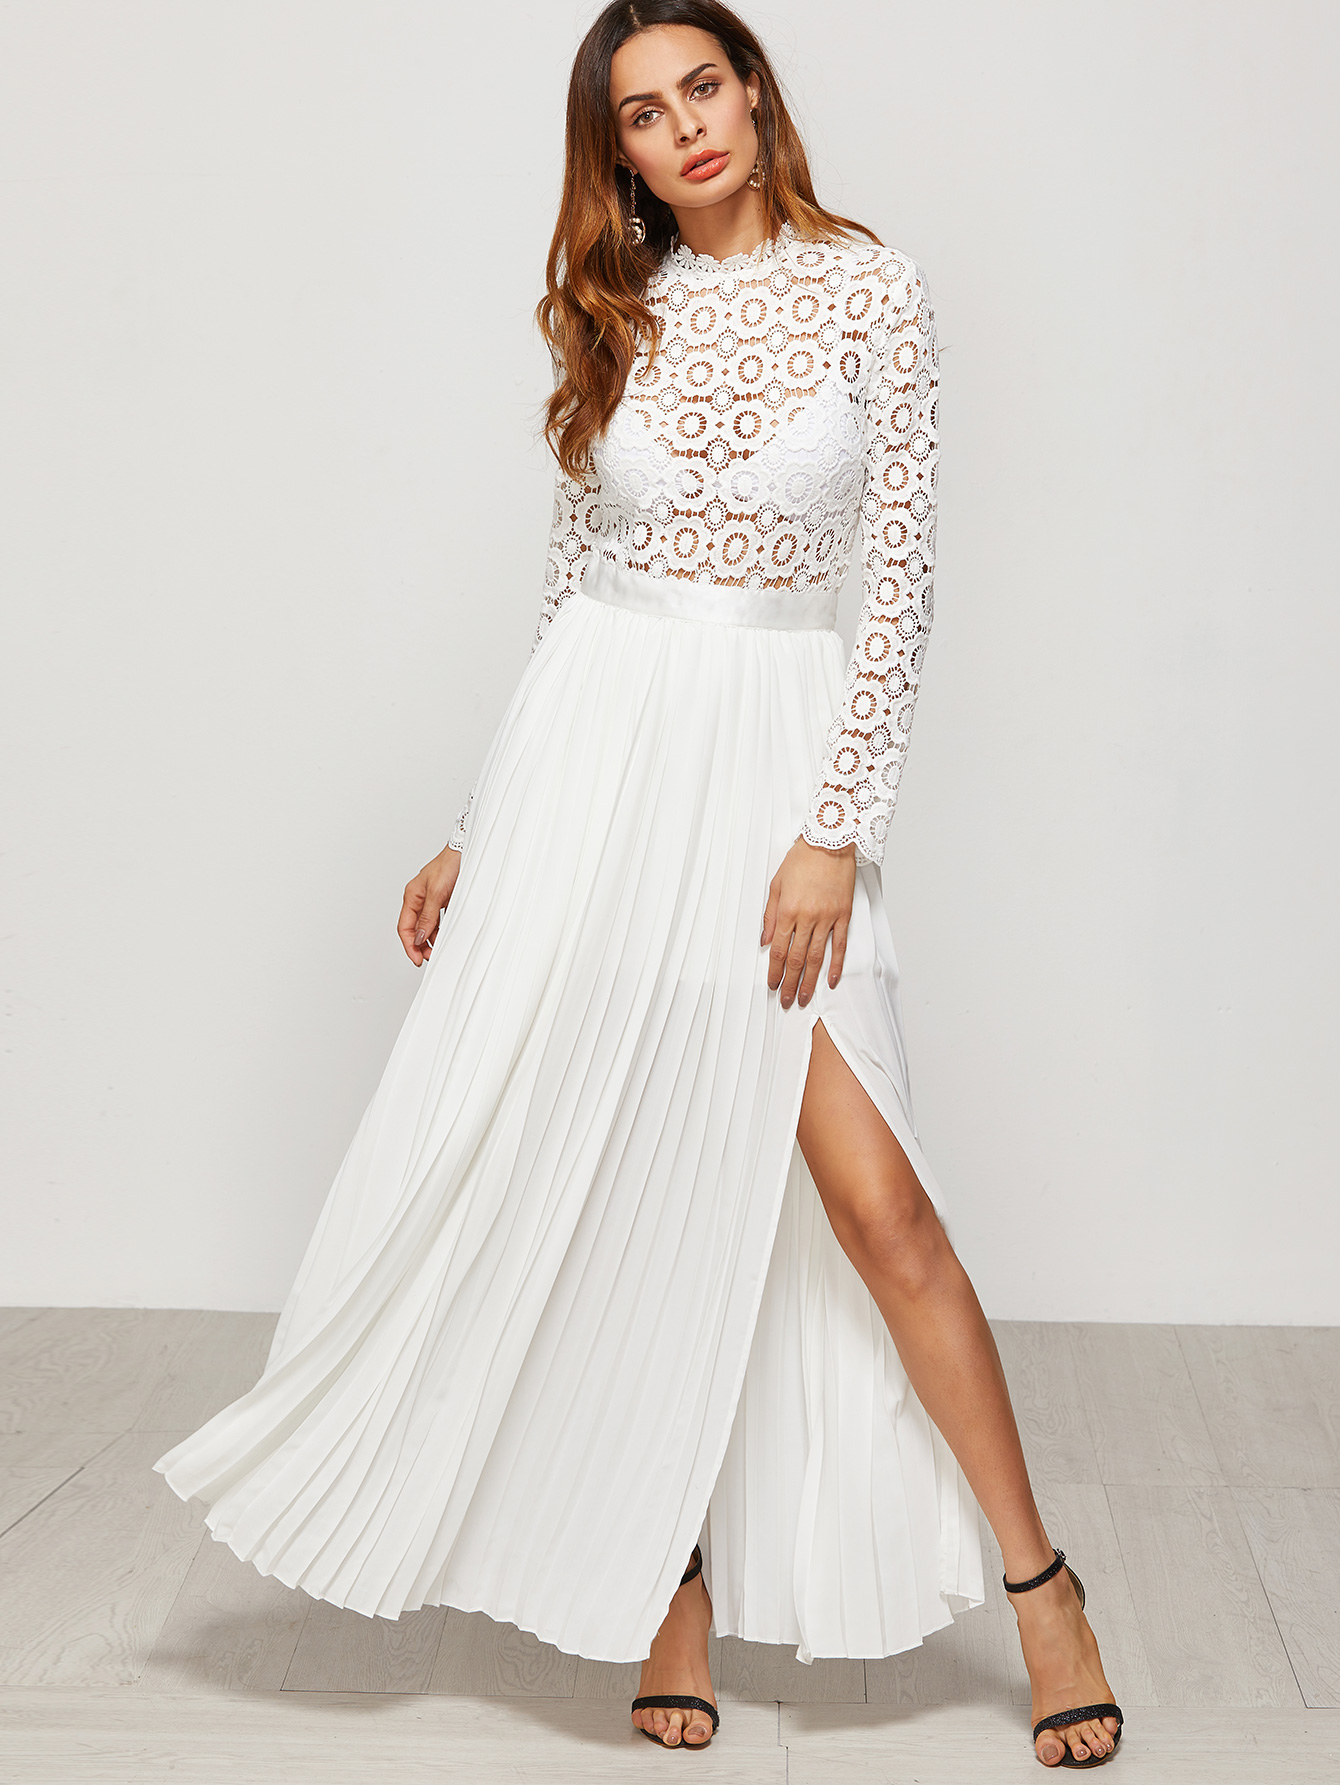 b077484328a White Eyelet Embroidered Lace Top Split Pleated Dress -SheIn ...